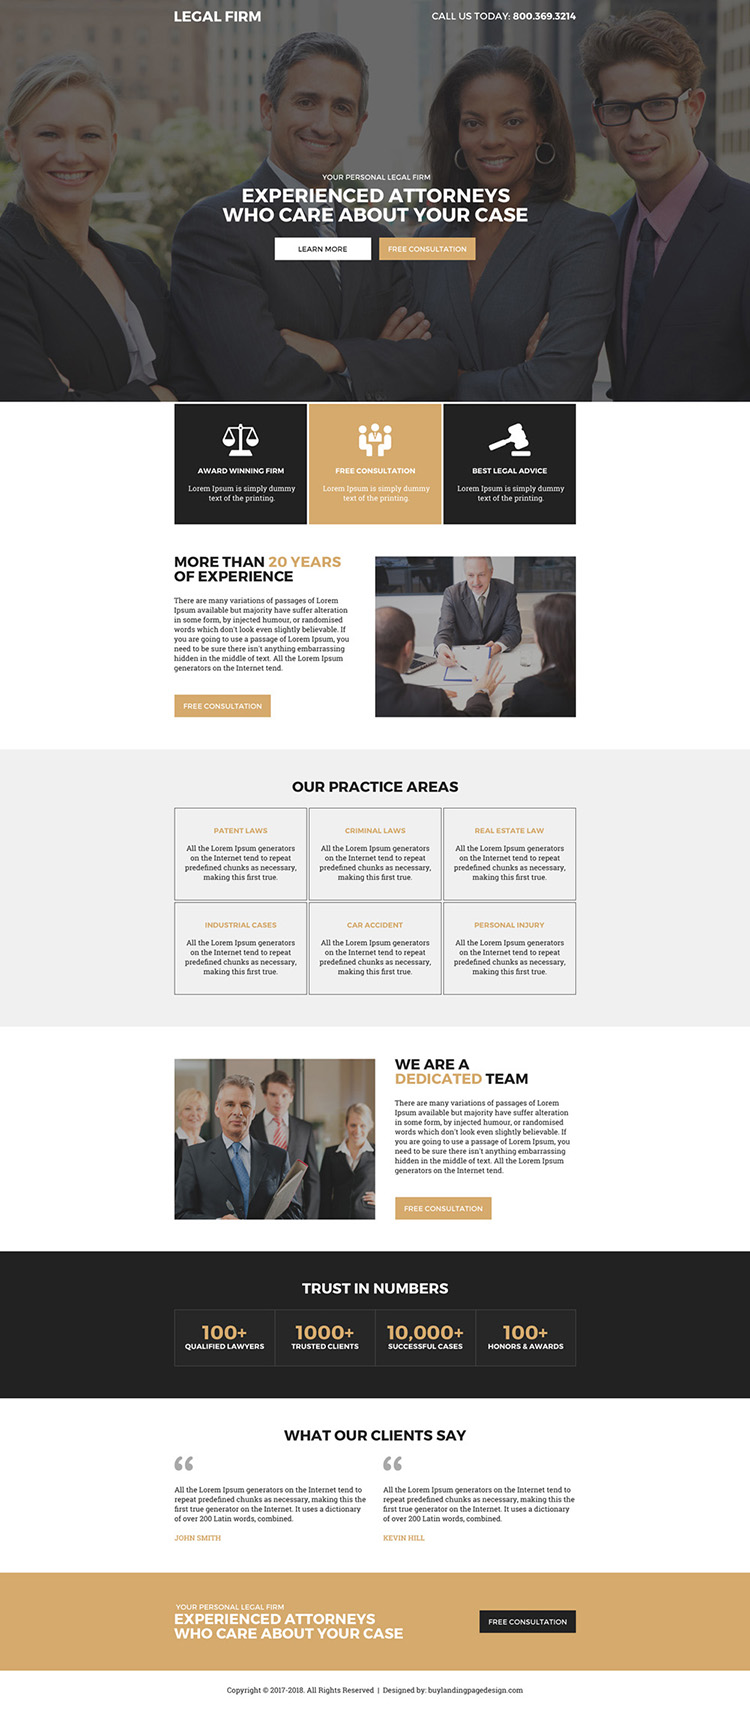 legal firm professional lead capturing landing page design